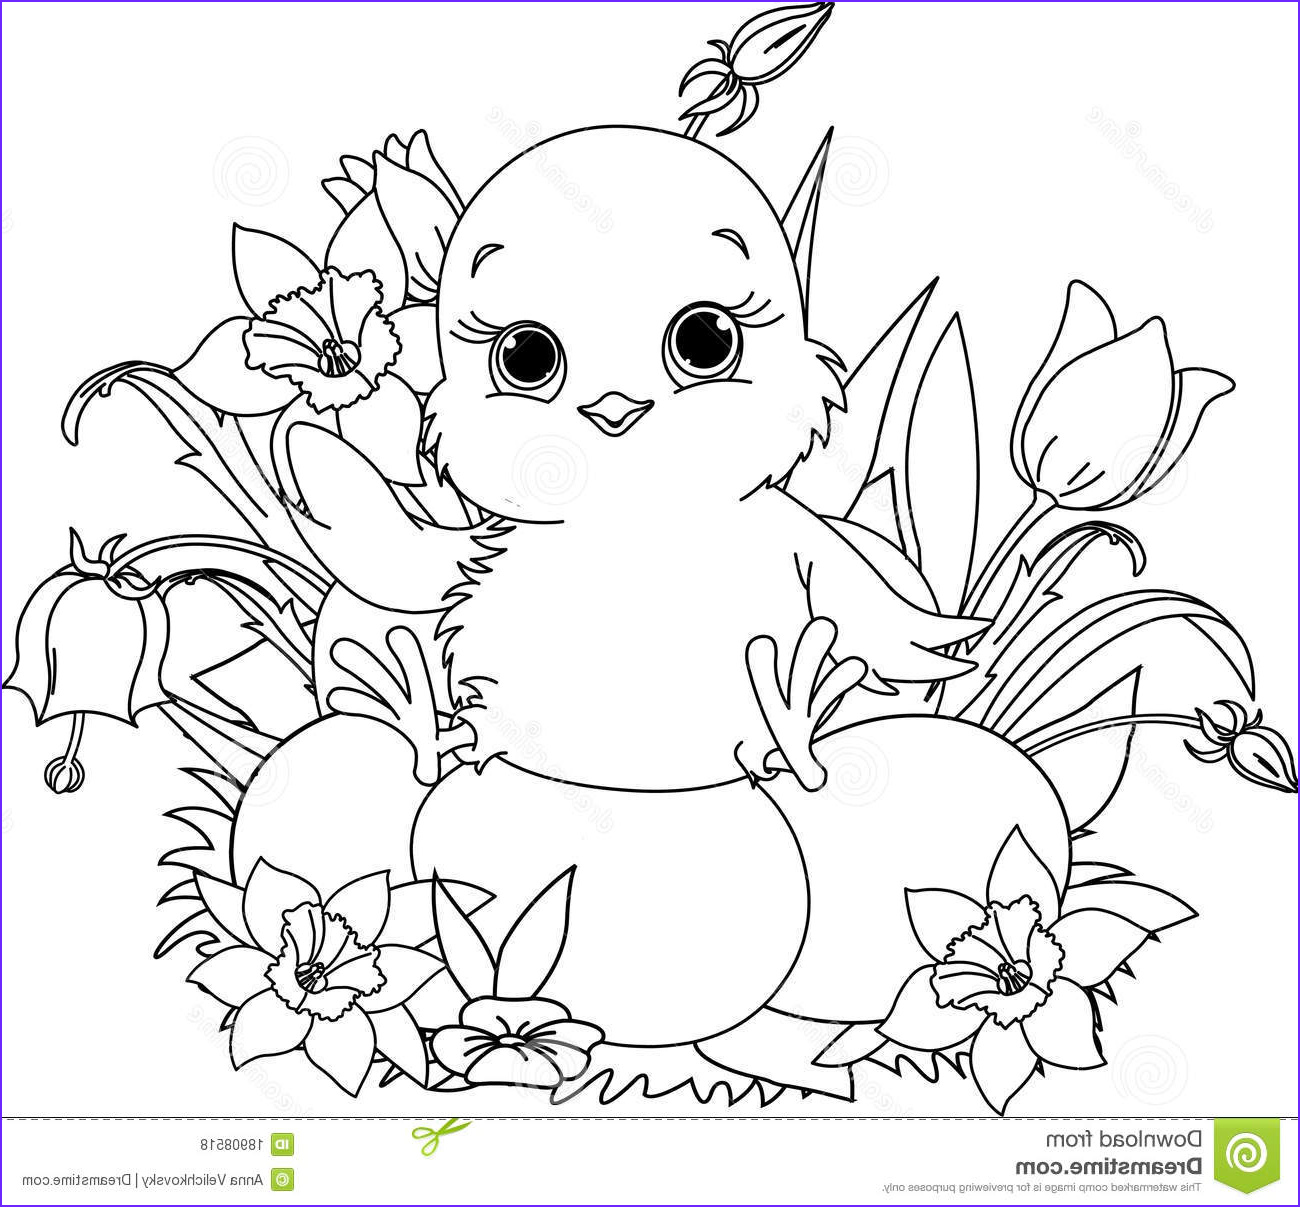 royalty free stock photos happy easter chick coloring page image